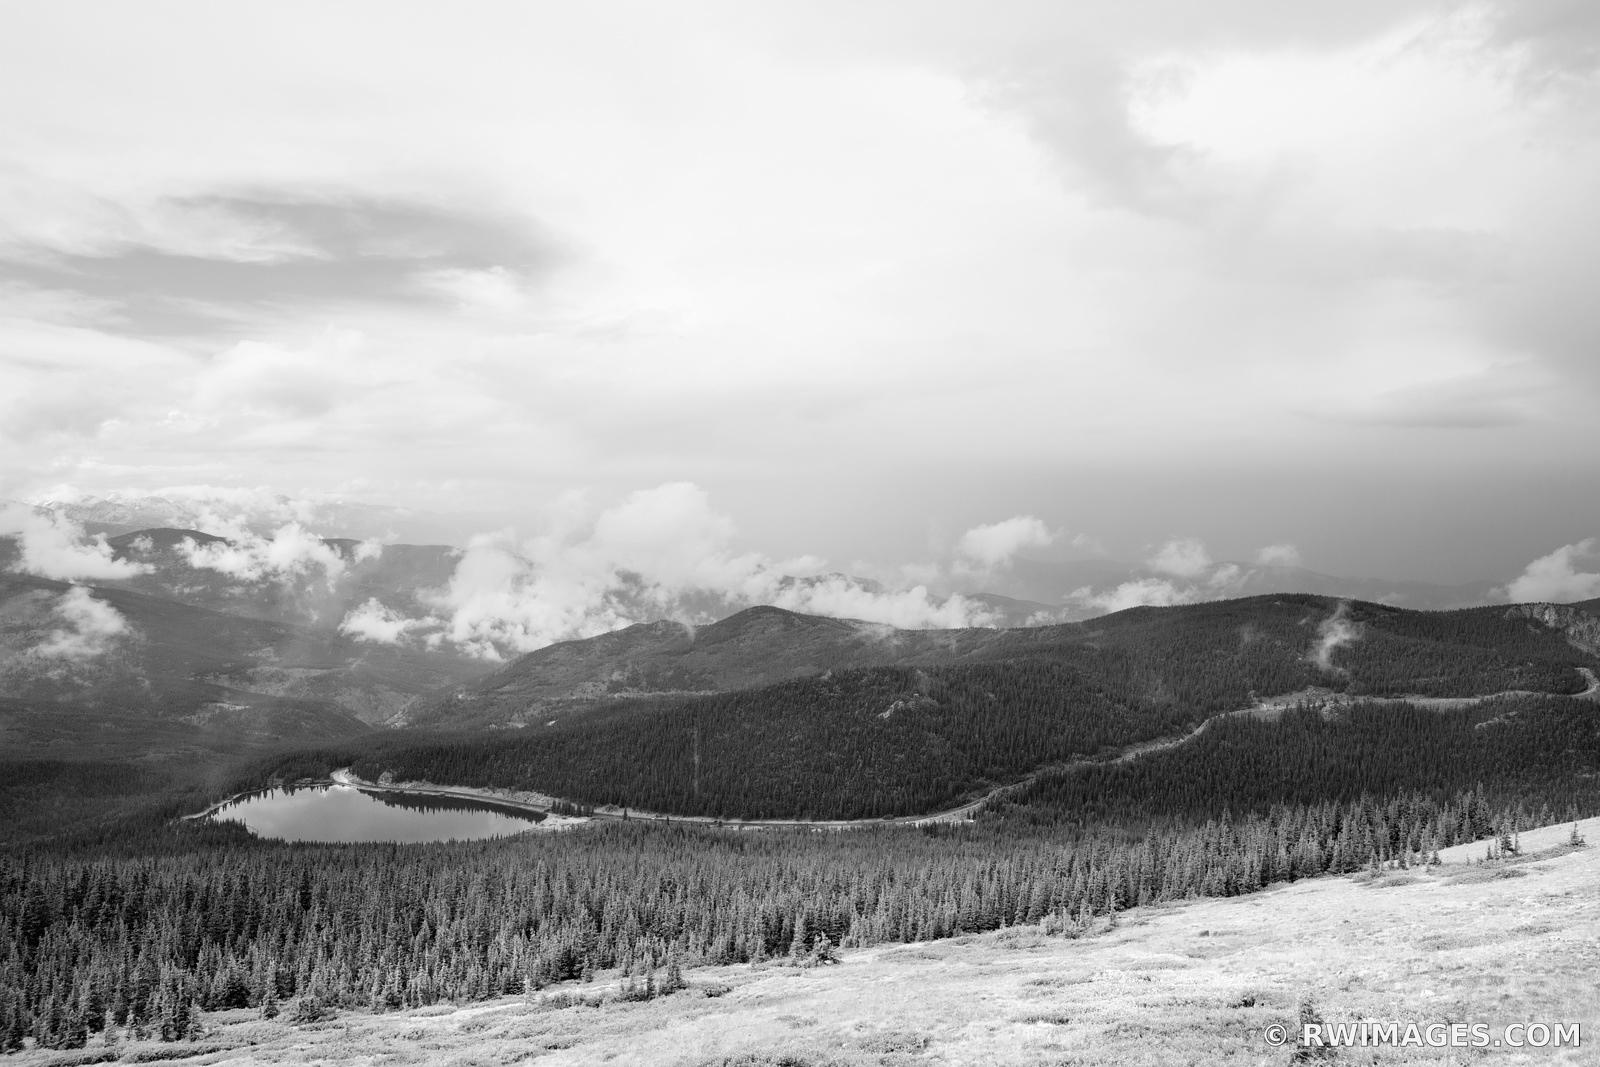 ECHO LAKE MOUNT EVANS ROAD SCENIC BYWAY COLORADO ROCKIES BLACK AND WHITE